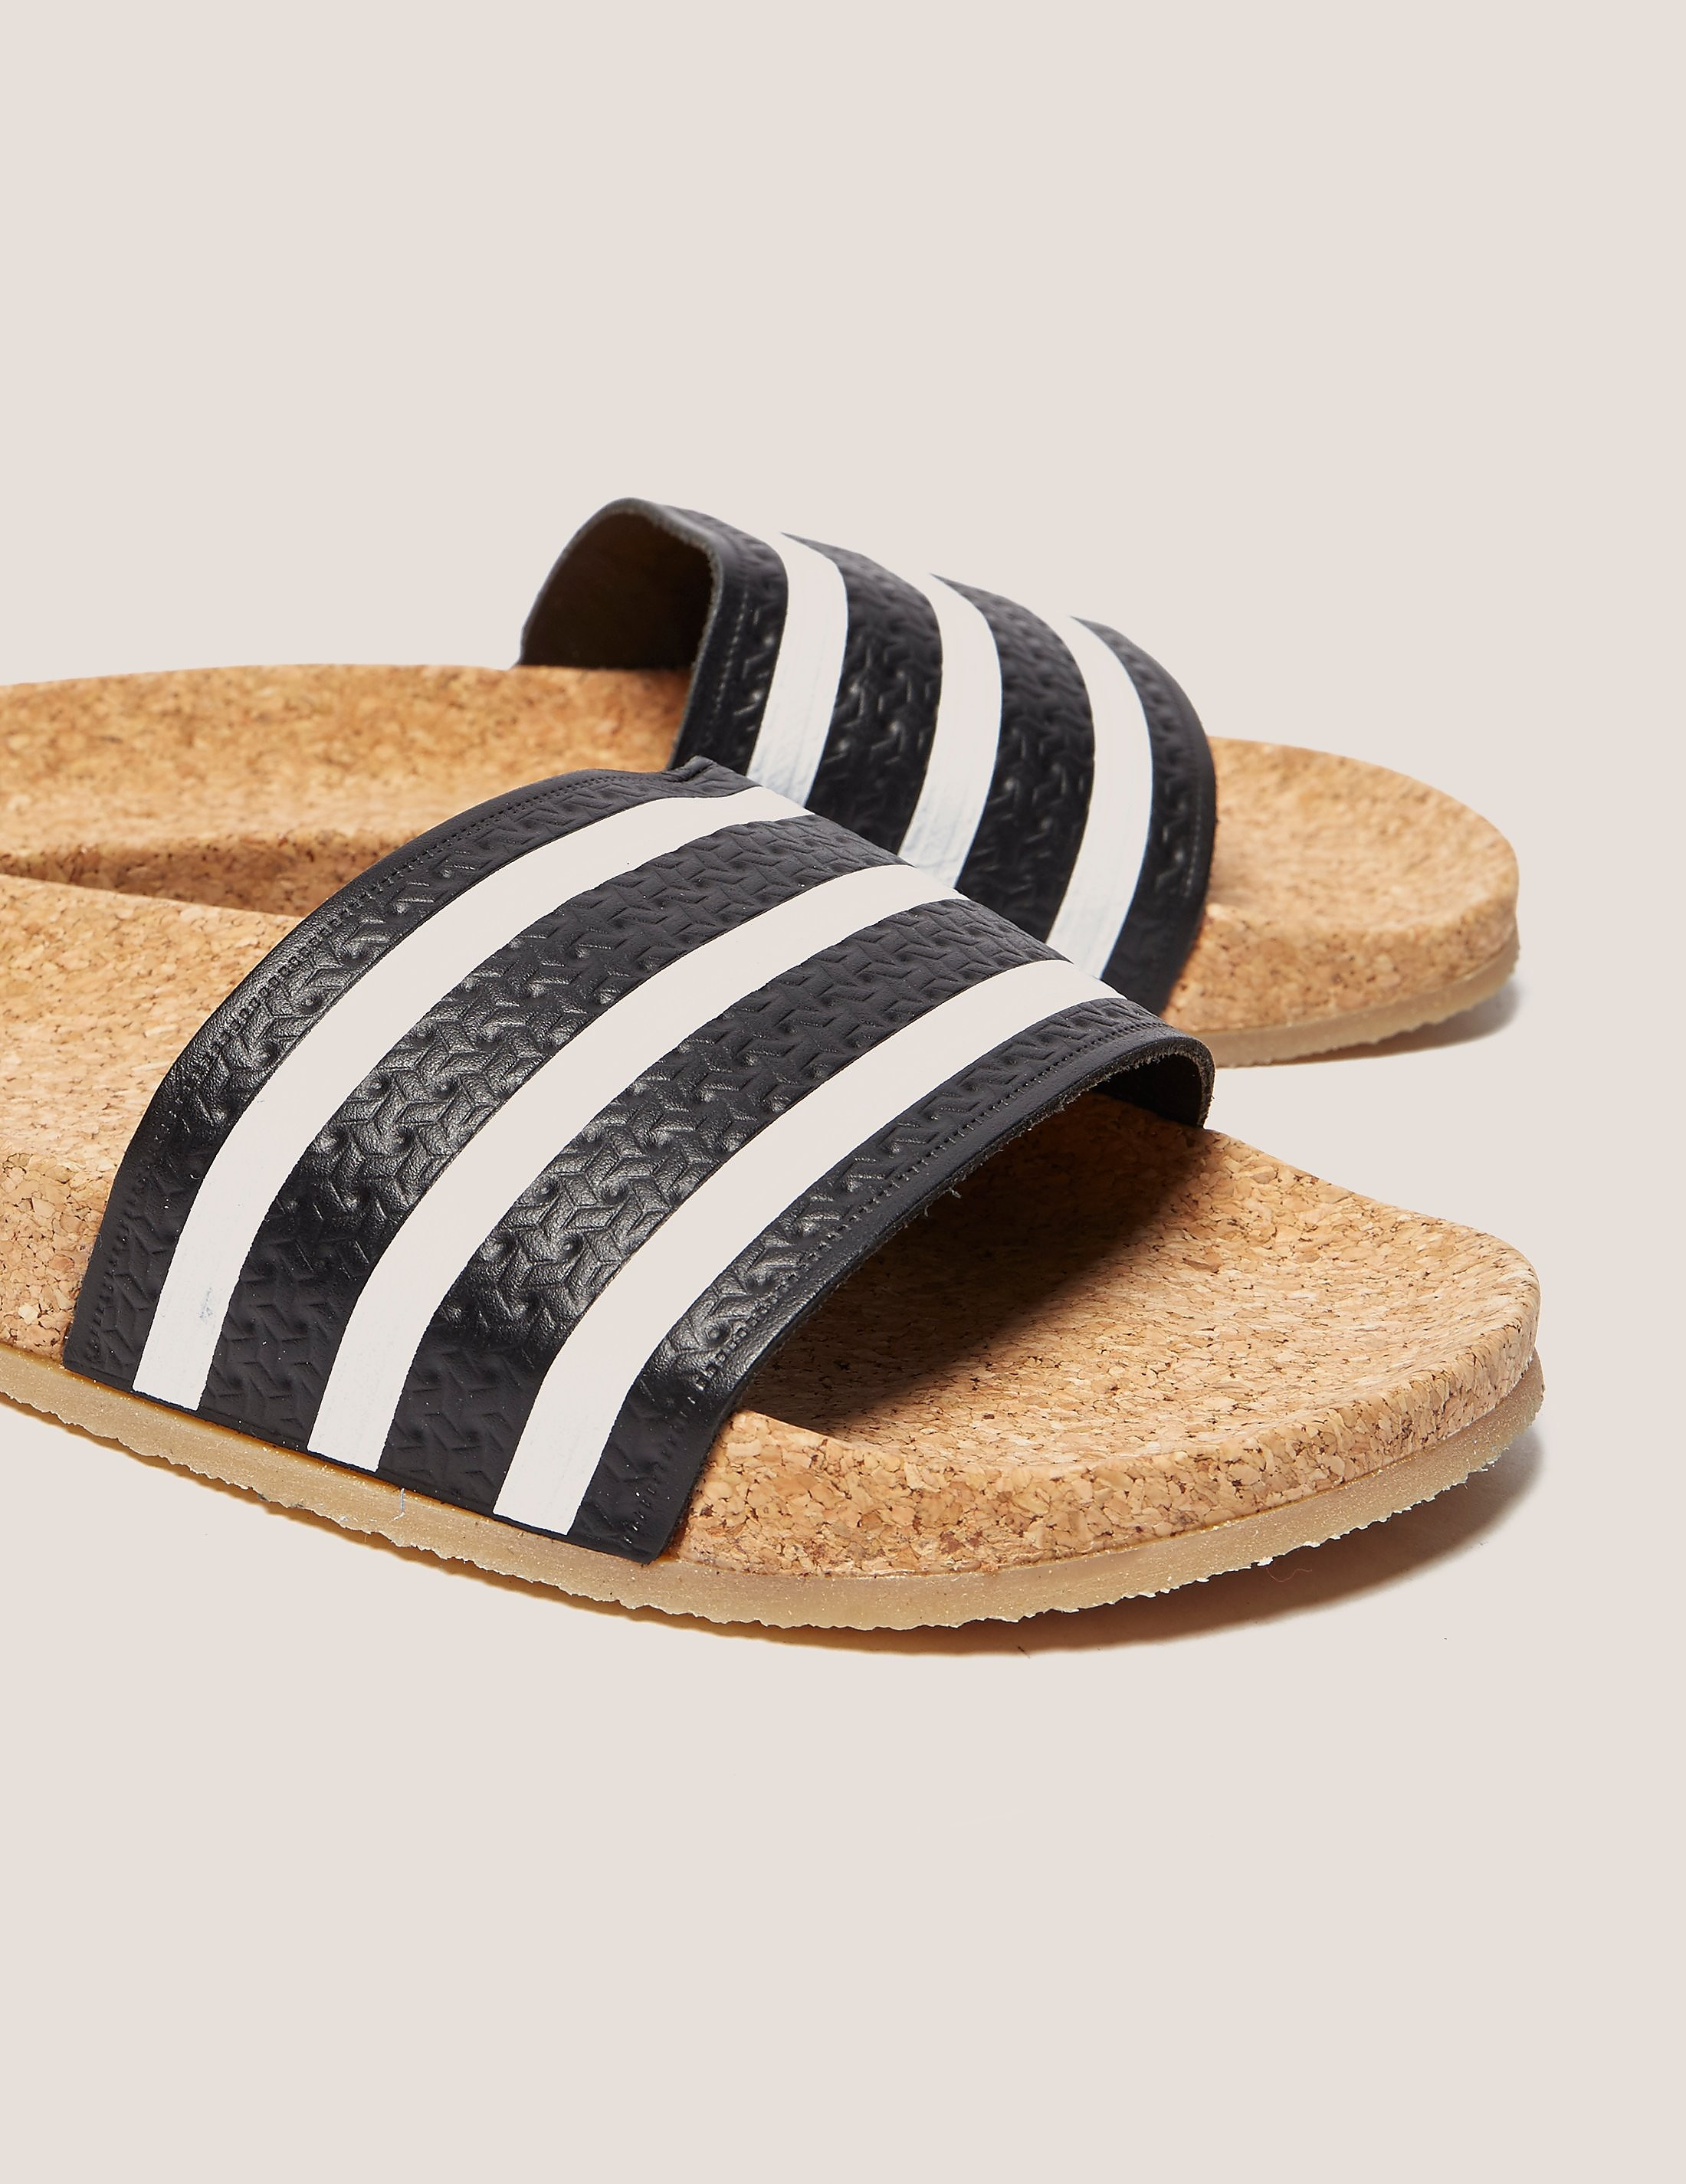 adidas Originals Adilette Cork Slides